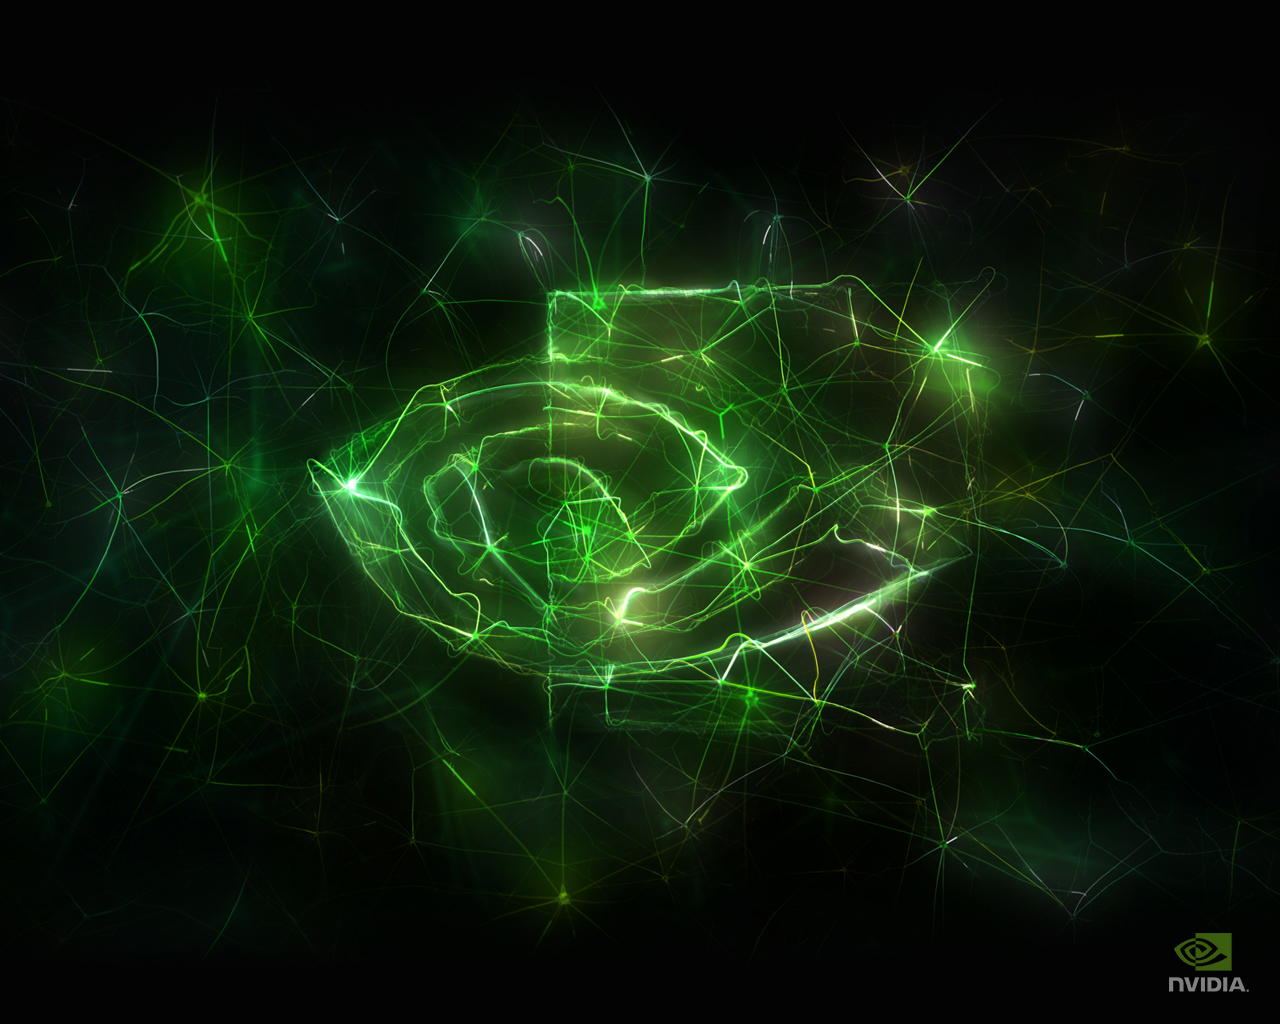 Wallpaper Download Demos Wallpapers and Screensavers NVIDIA Cool 1280x1024